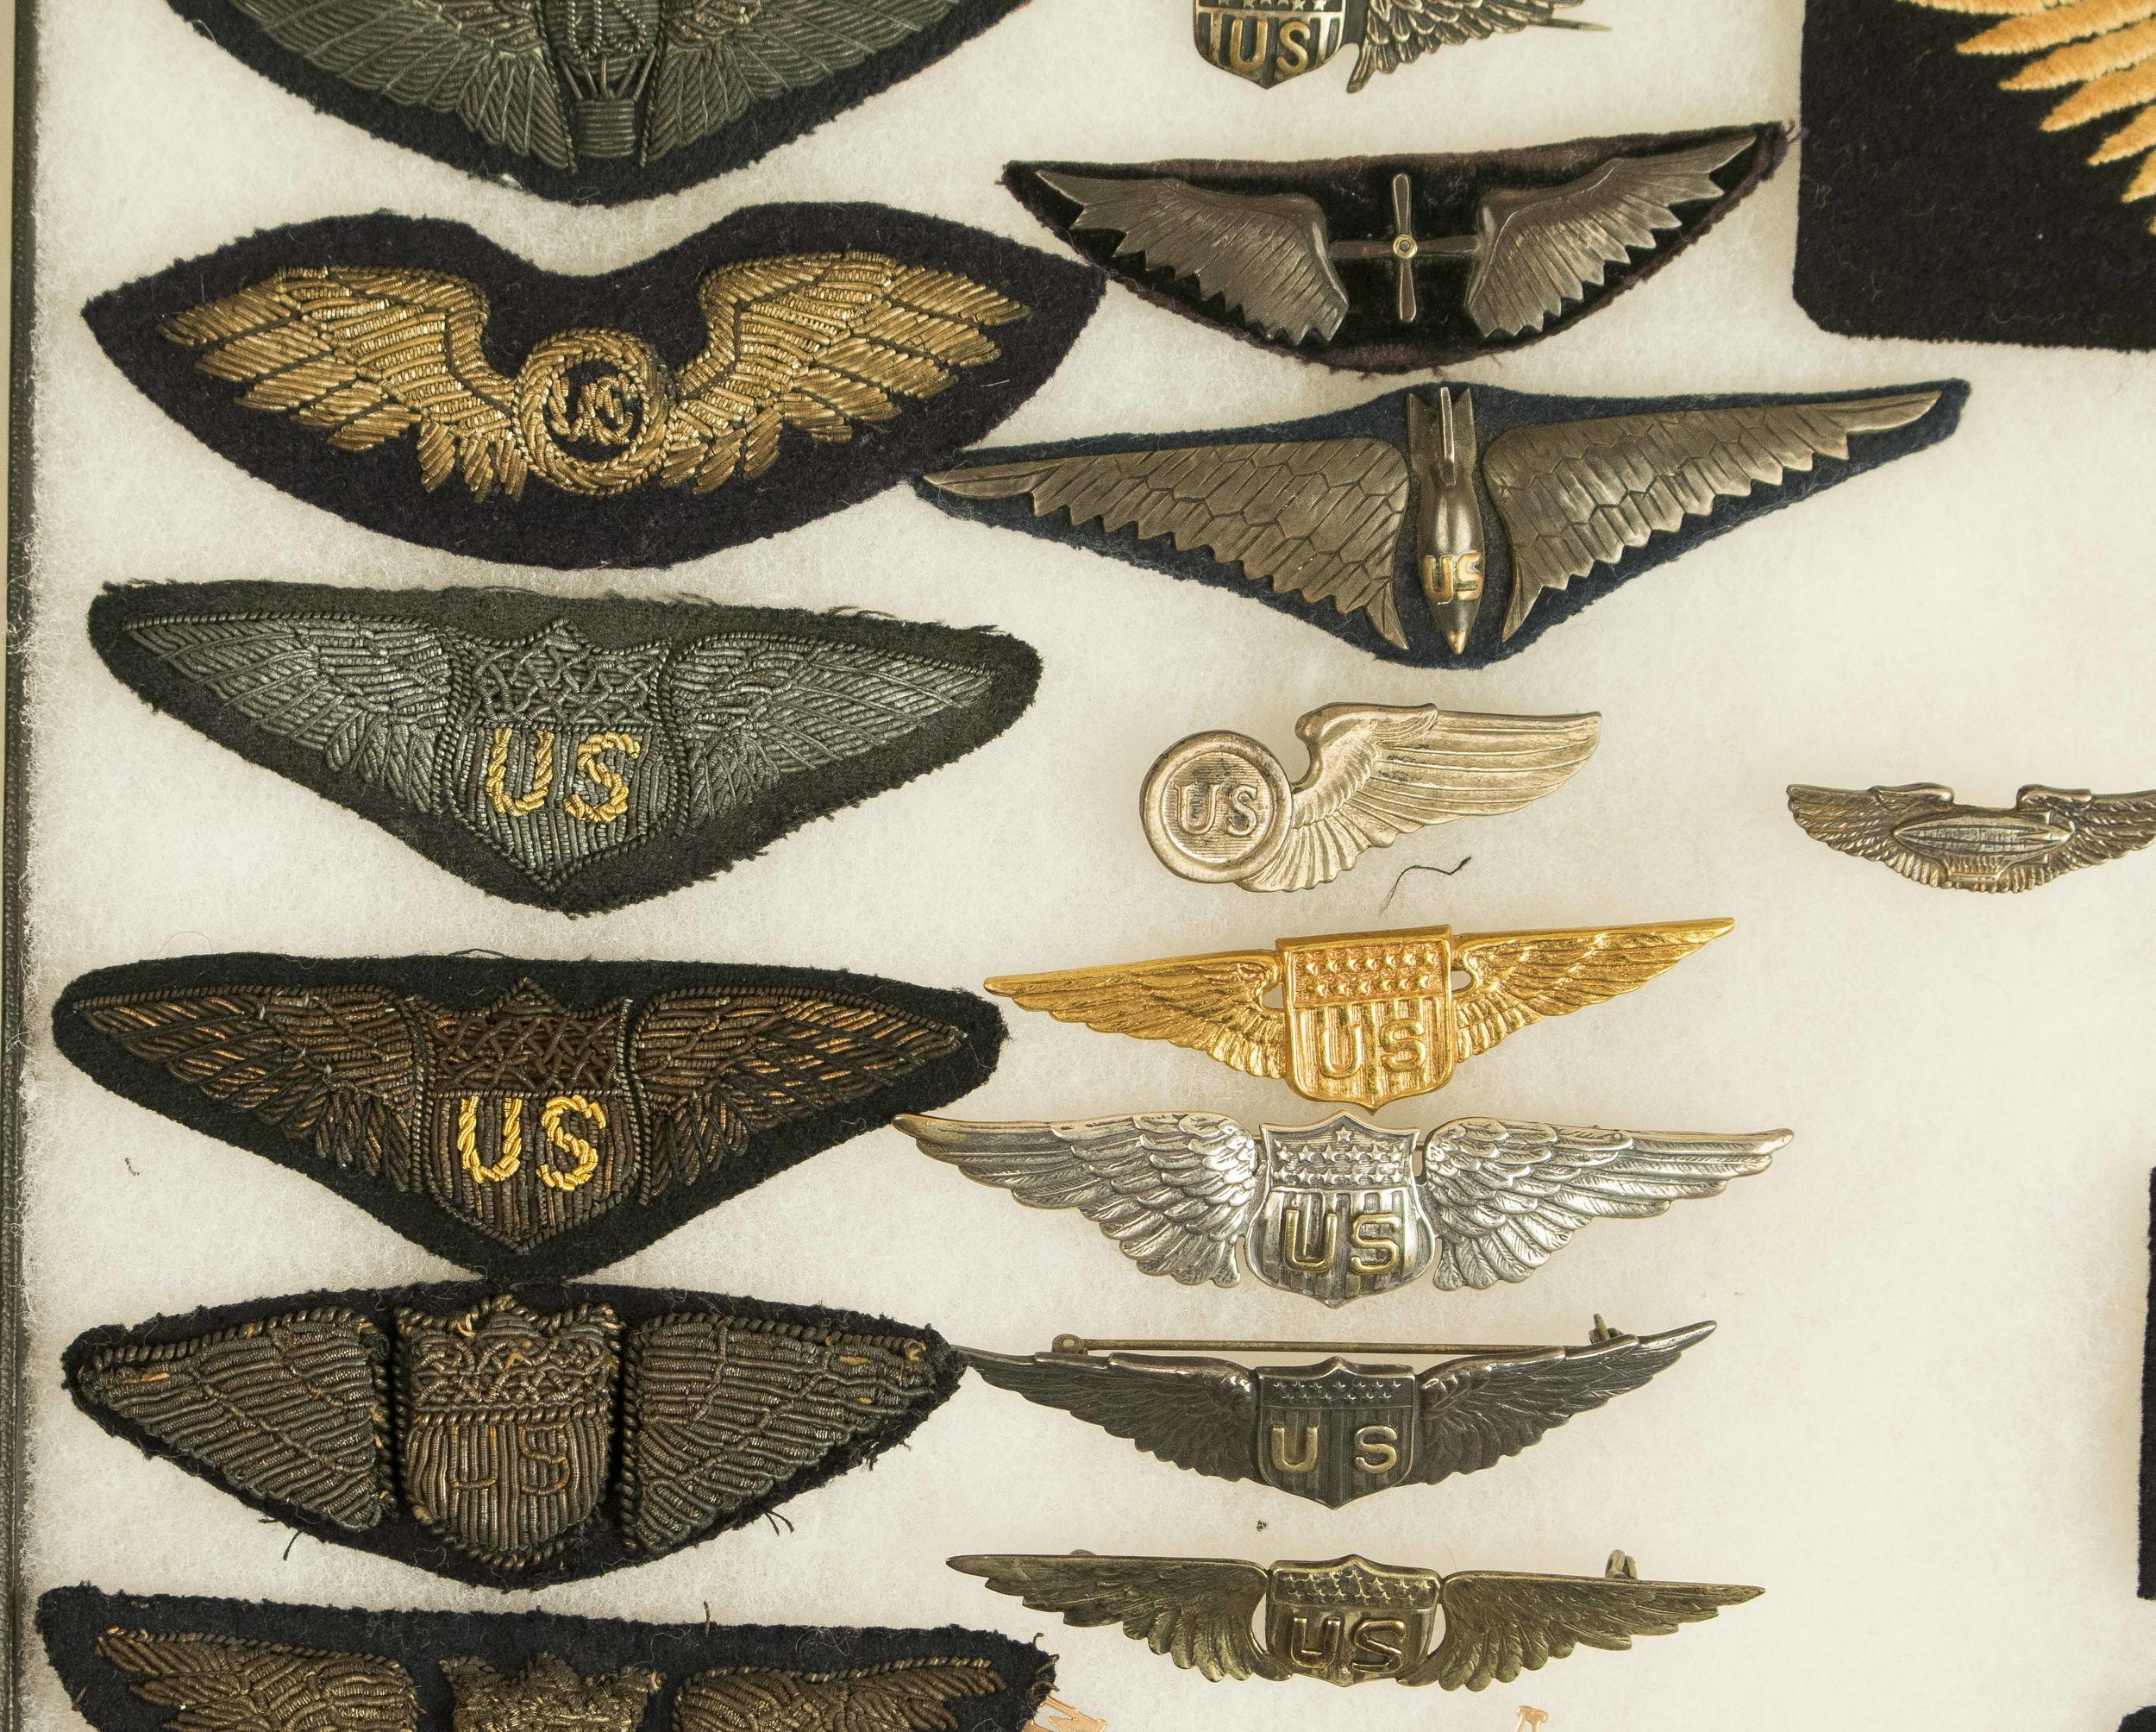 US WWI and 1920'S Style Army Air Corps Wings   Witherell's Auction House